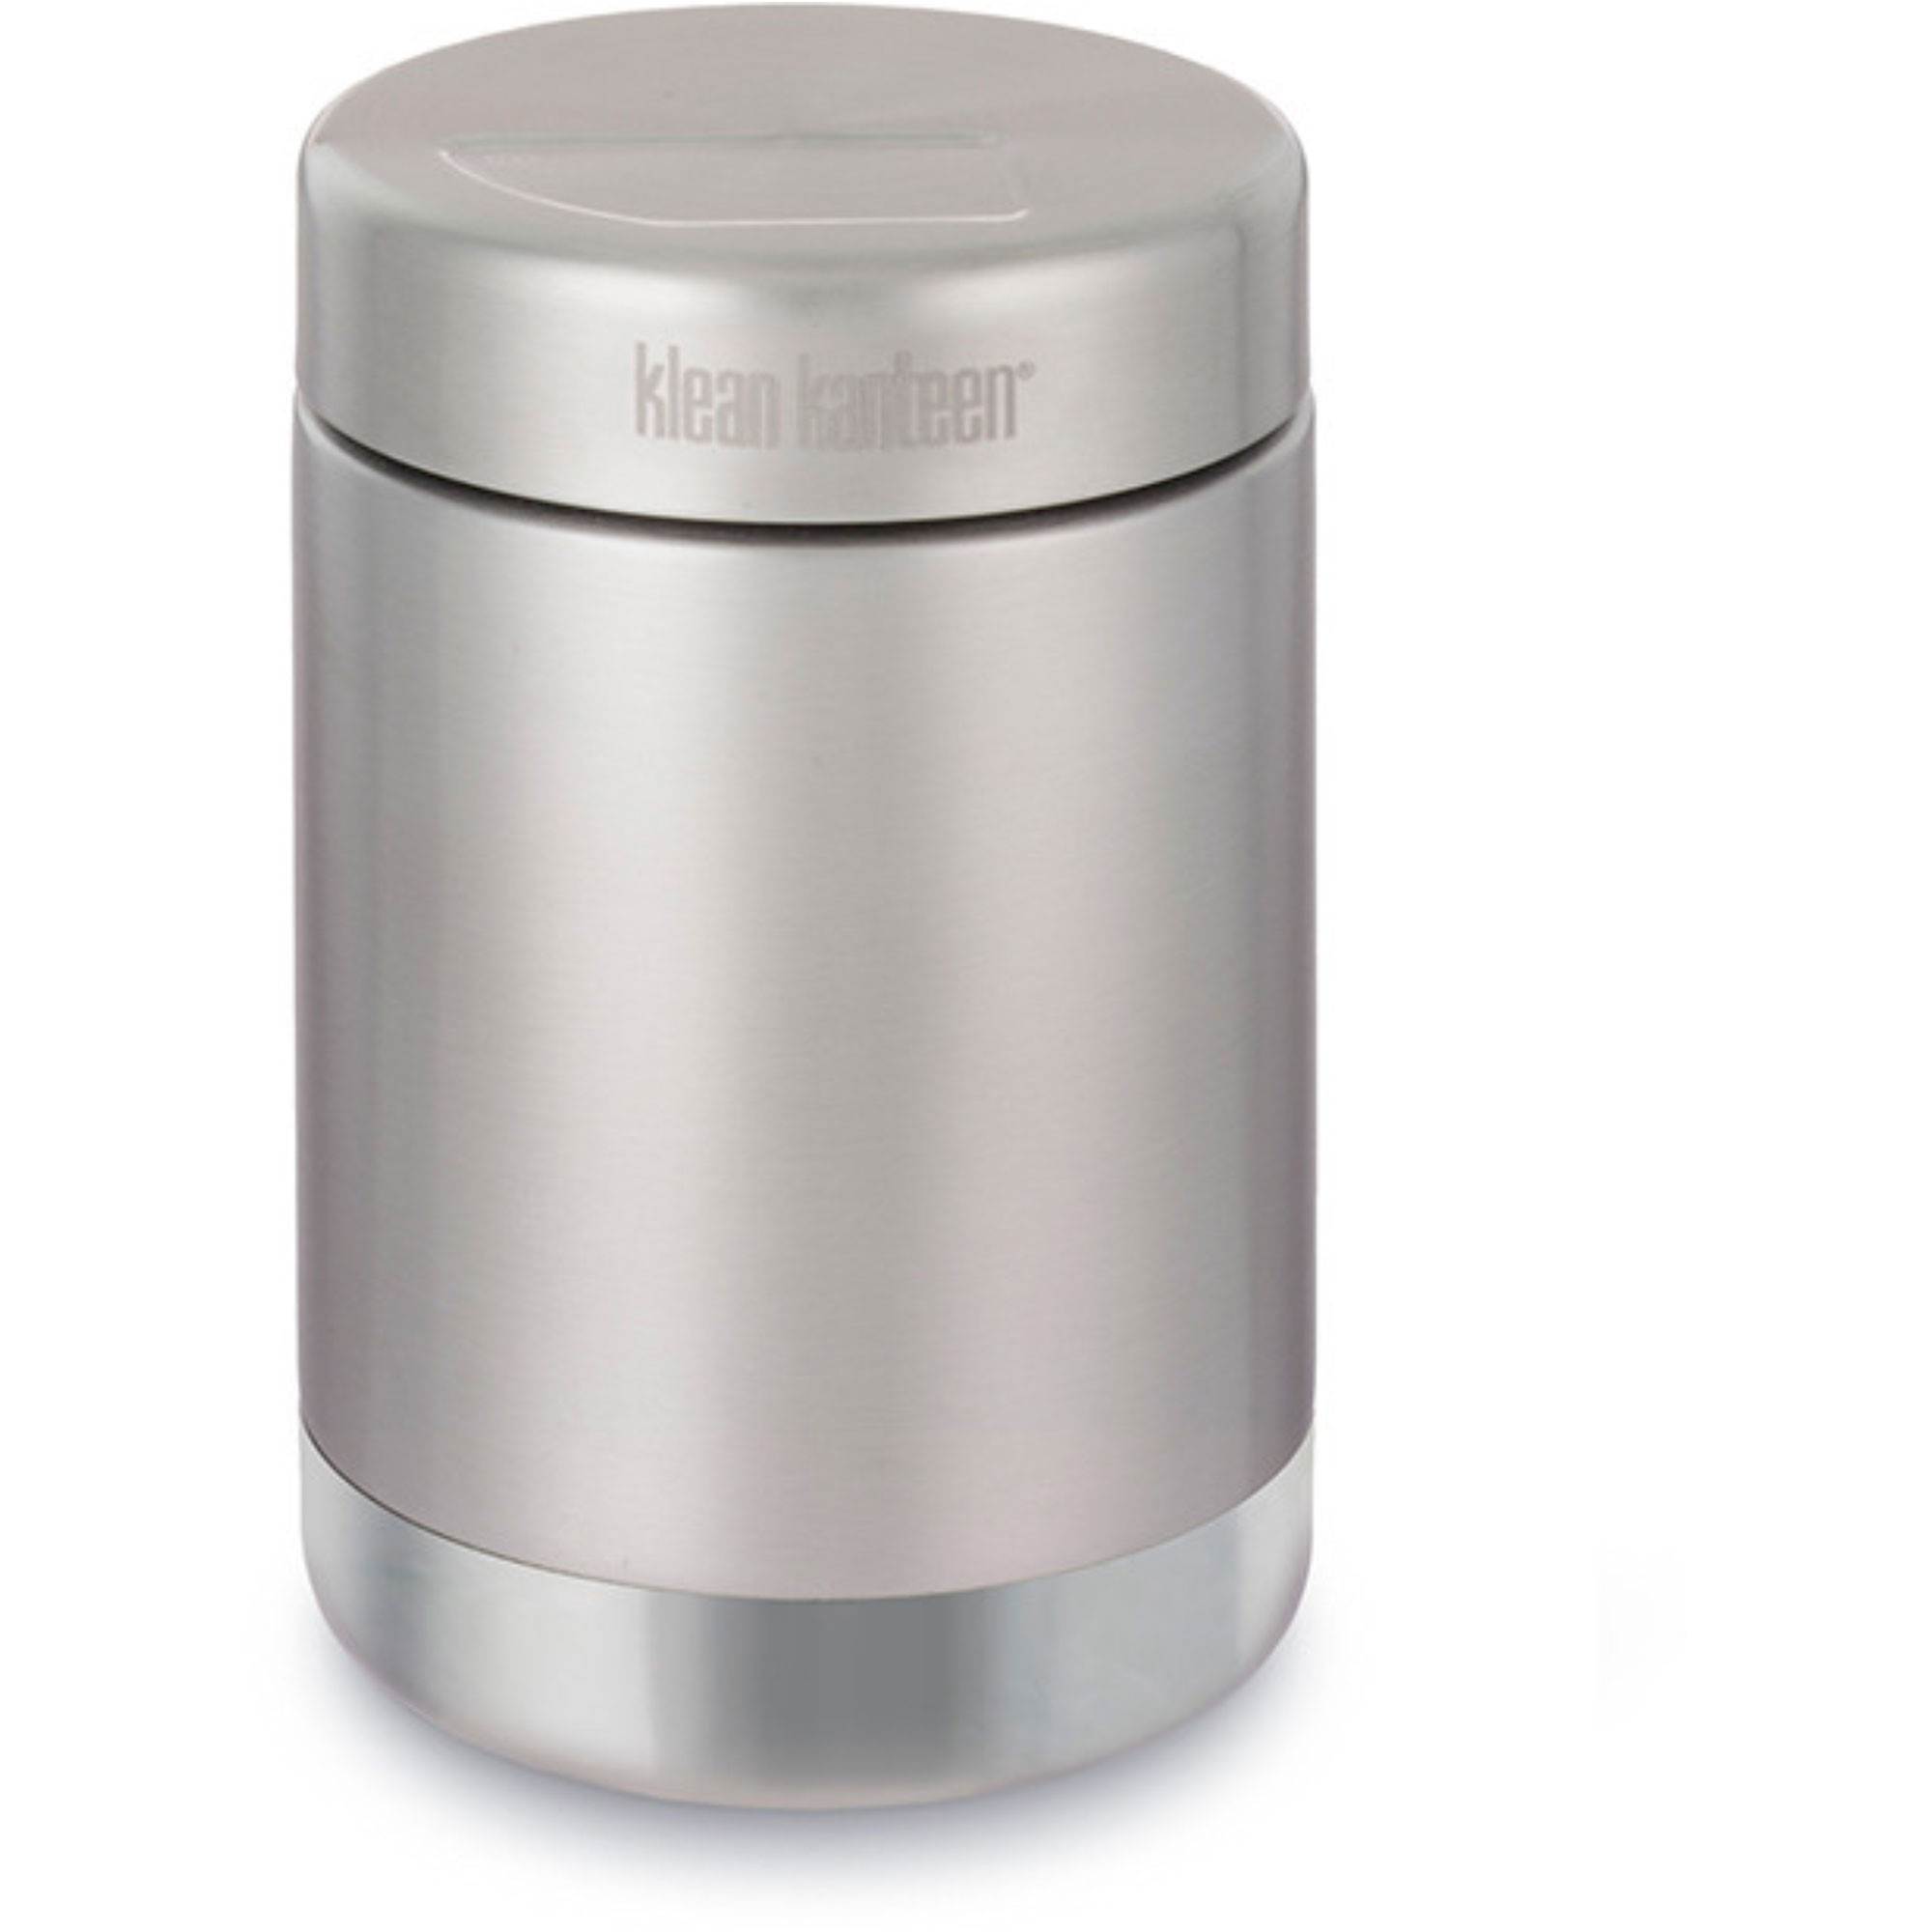 KLEAN KANTEEN - Insulated Food Canister - 473ml Stainless Steel